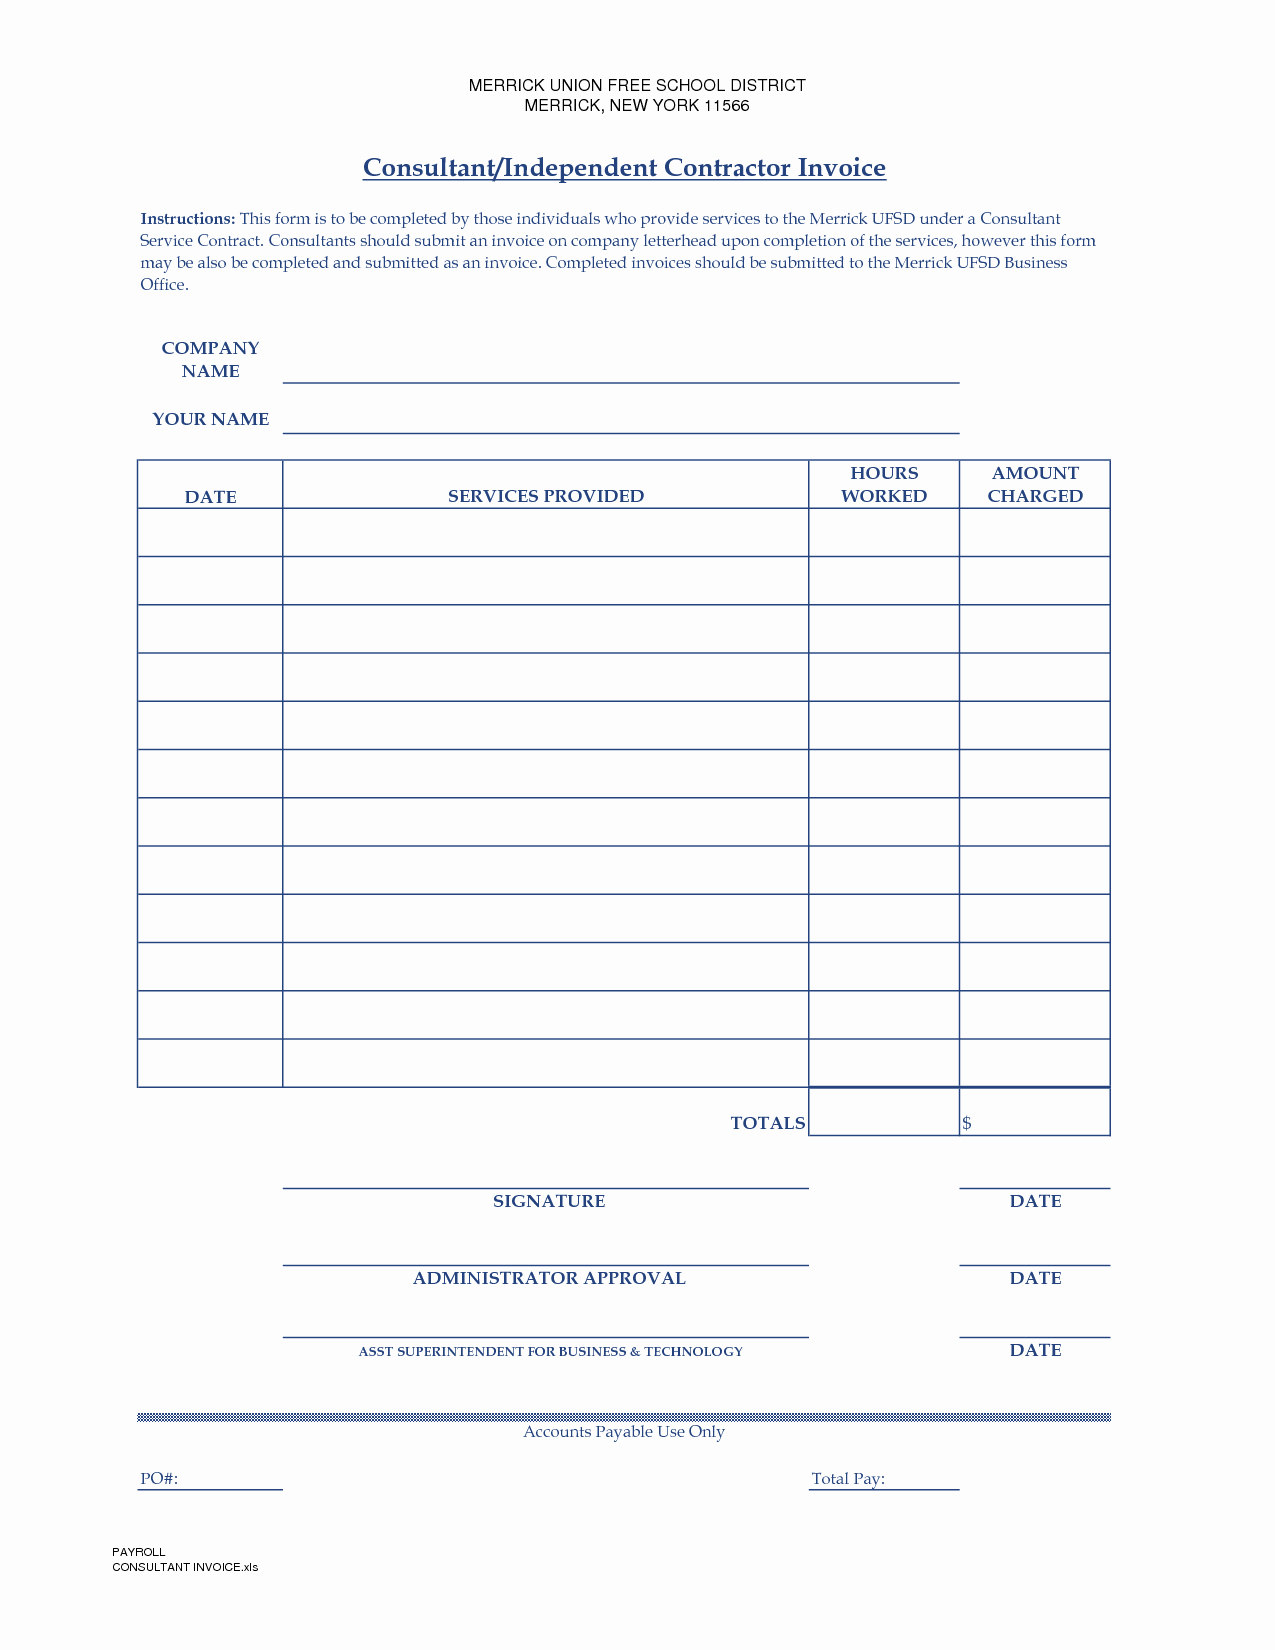 Independent Contractor Invoice Template Pdf Beautiful Independent Contractor Invoice Template